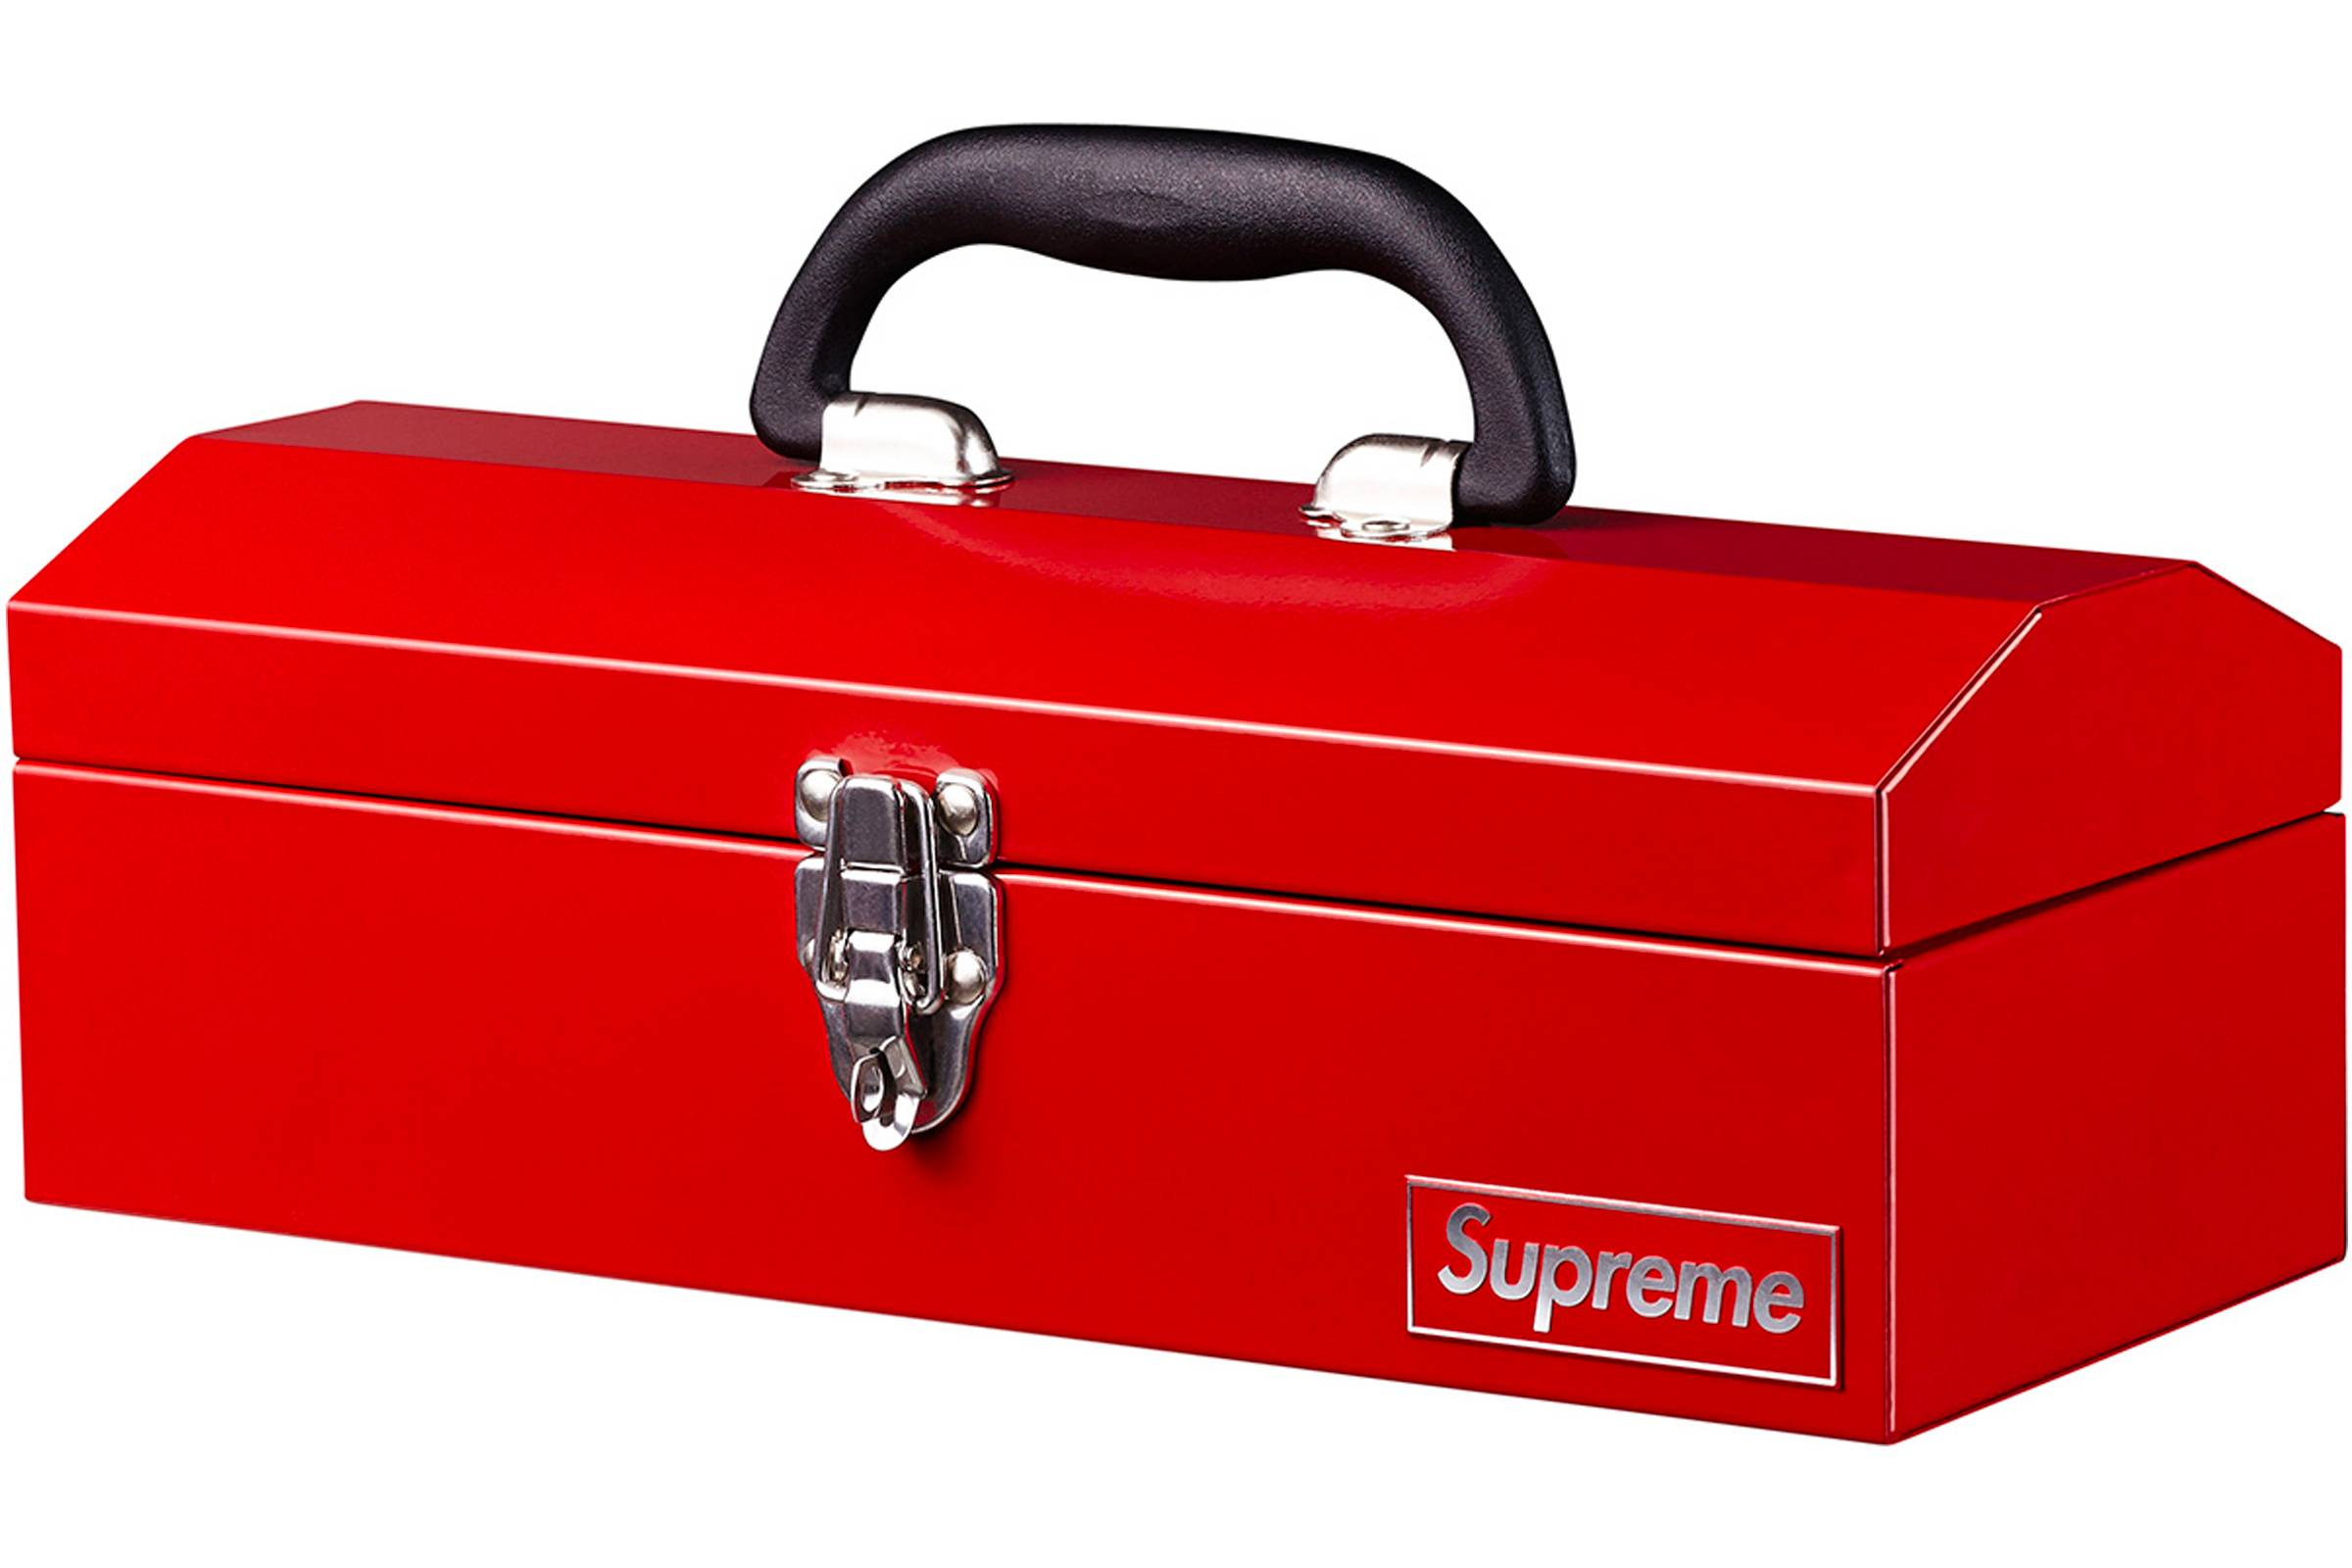 Supreme Toolbox (Fall/Winter 2014)